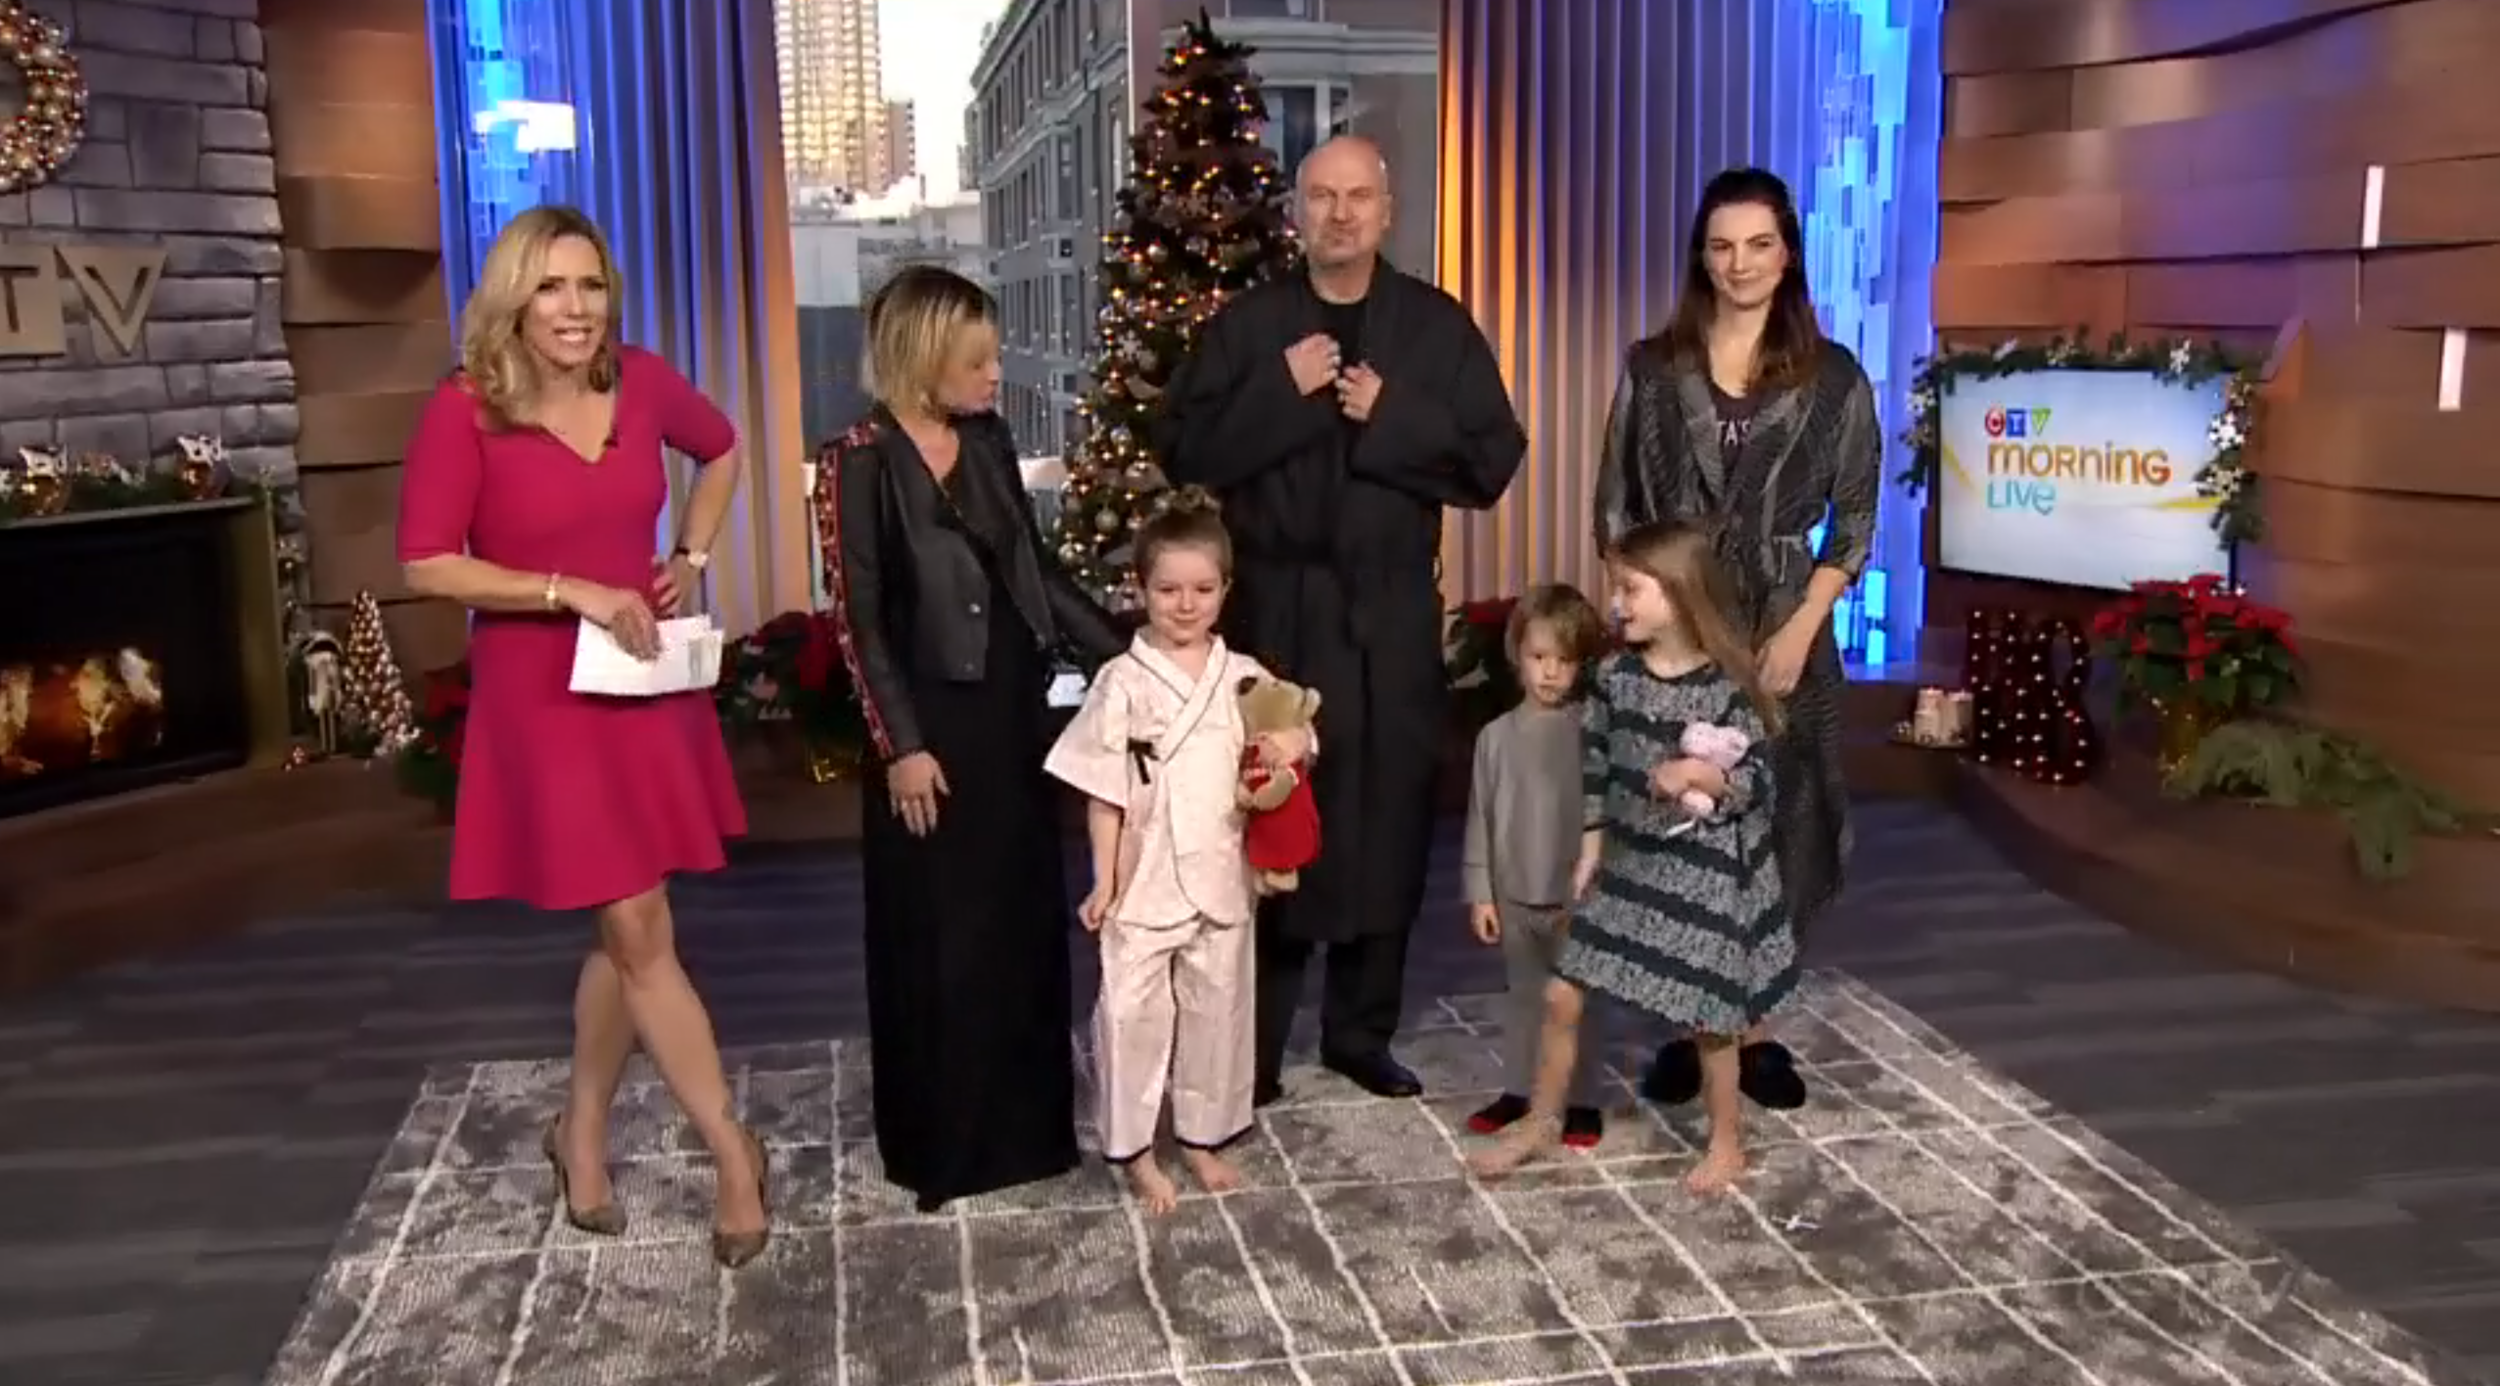 CTV Morning Live: Festive jammies for the whole family